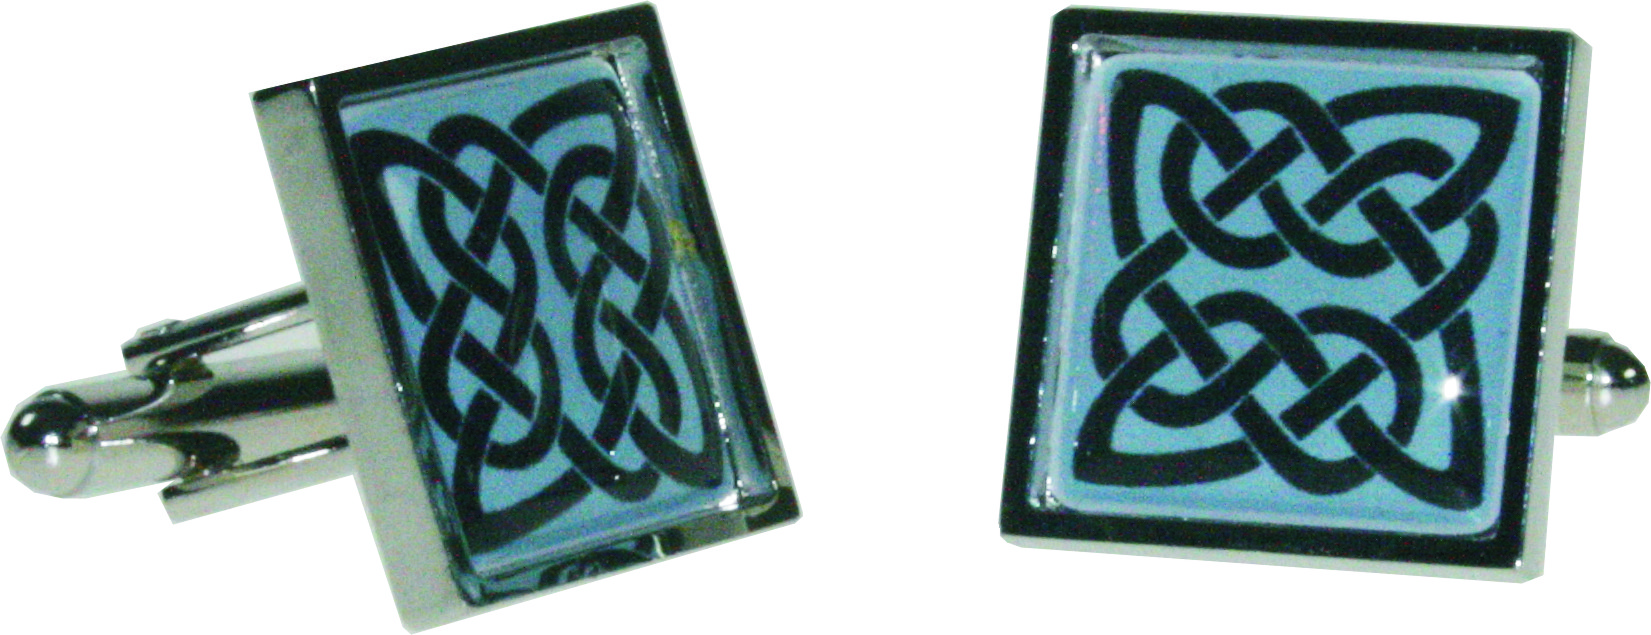 "Square Celtic Blue Nickel Plated Cuff links in Snap Hinged Box 2.5cm dia (1"")"